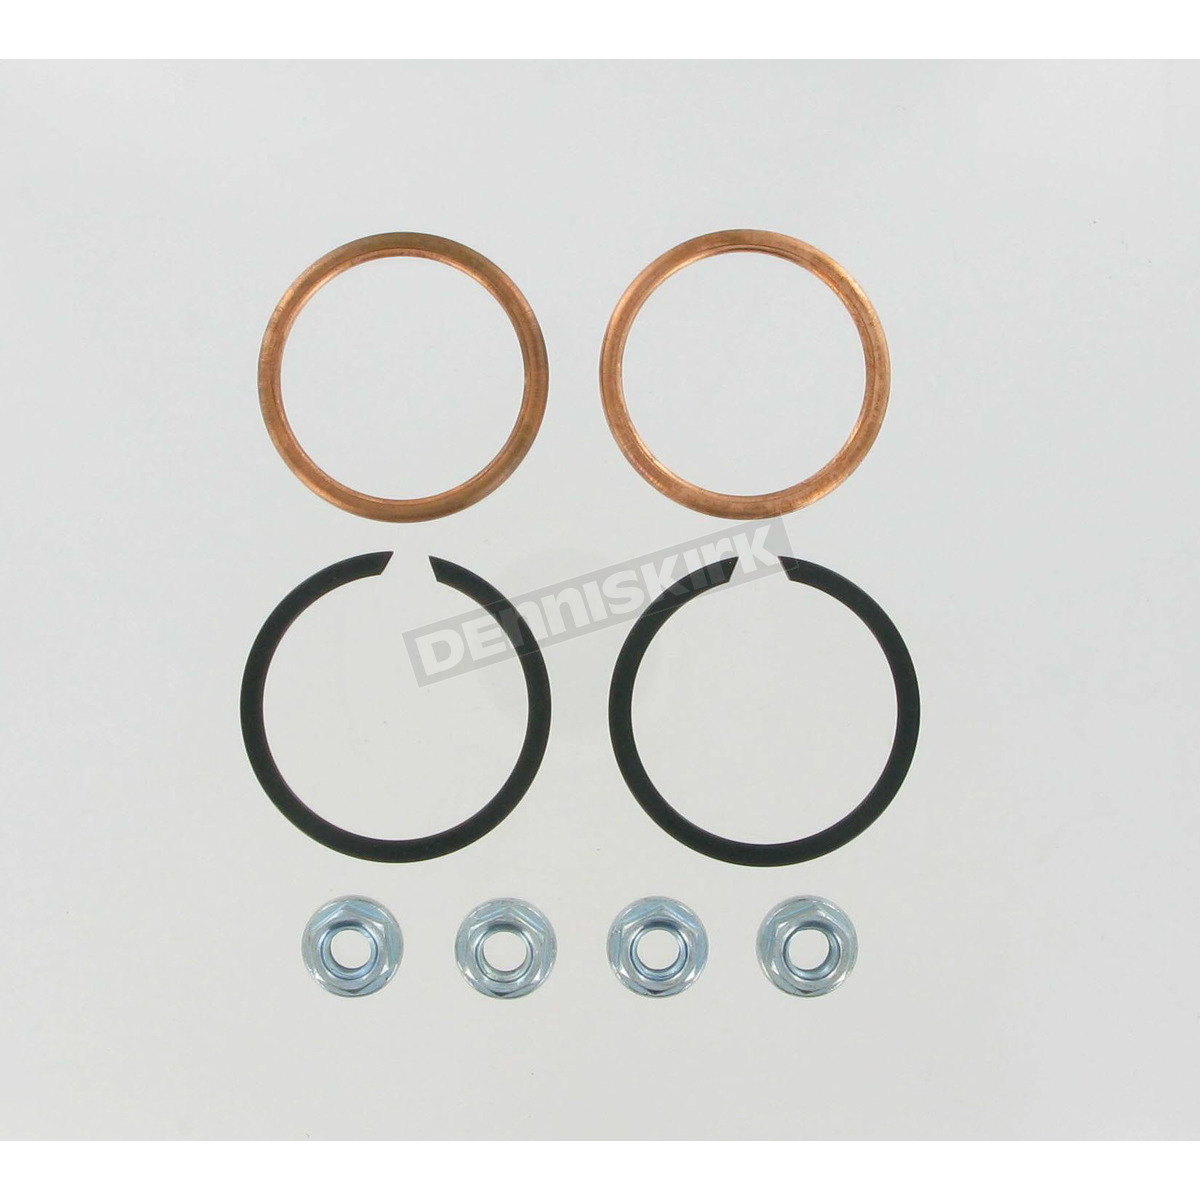 Copper Crush Ring Exhaust Gaskets and Heavy Duty Hex Nuts - 65324-83-KCR2